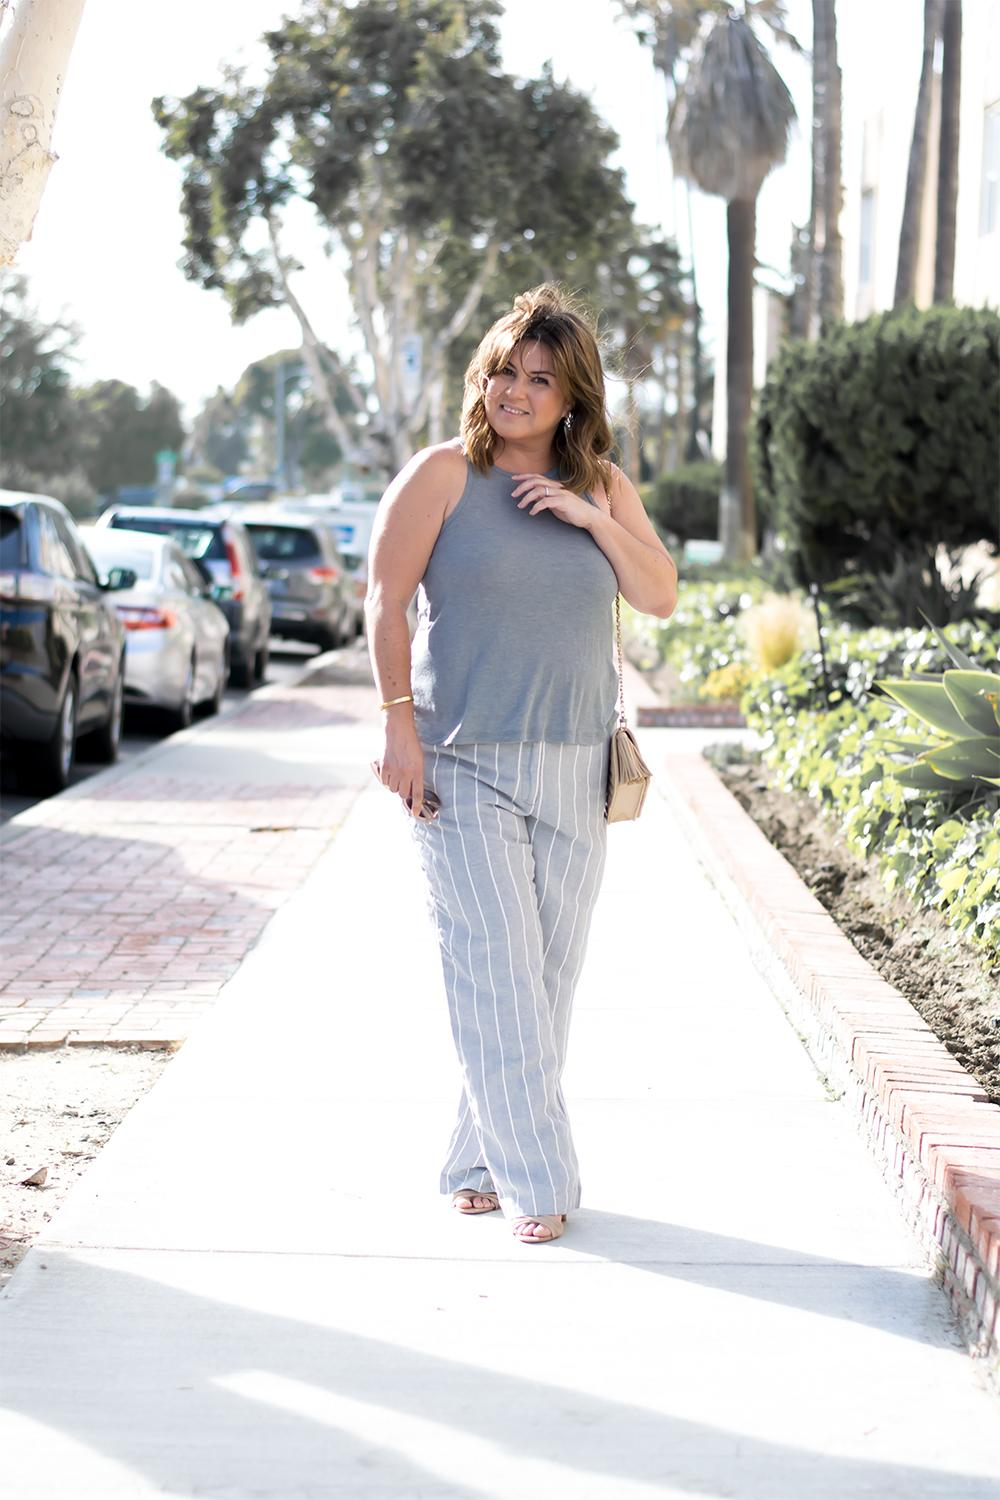 Striped-Linen-Pants-Outfit-Top-Blogger-Outfits-for-2017-Barefoot-in-LA-Fashion-Blog-Style-Ideas_1031